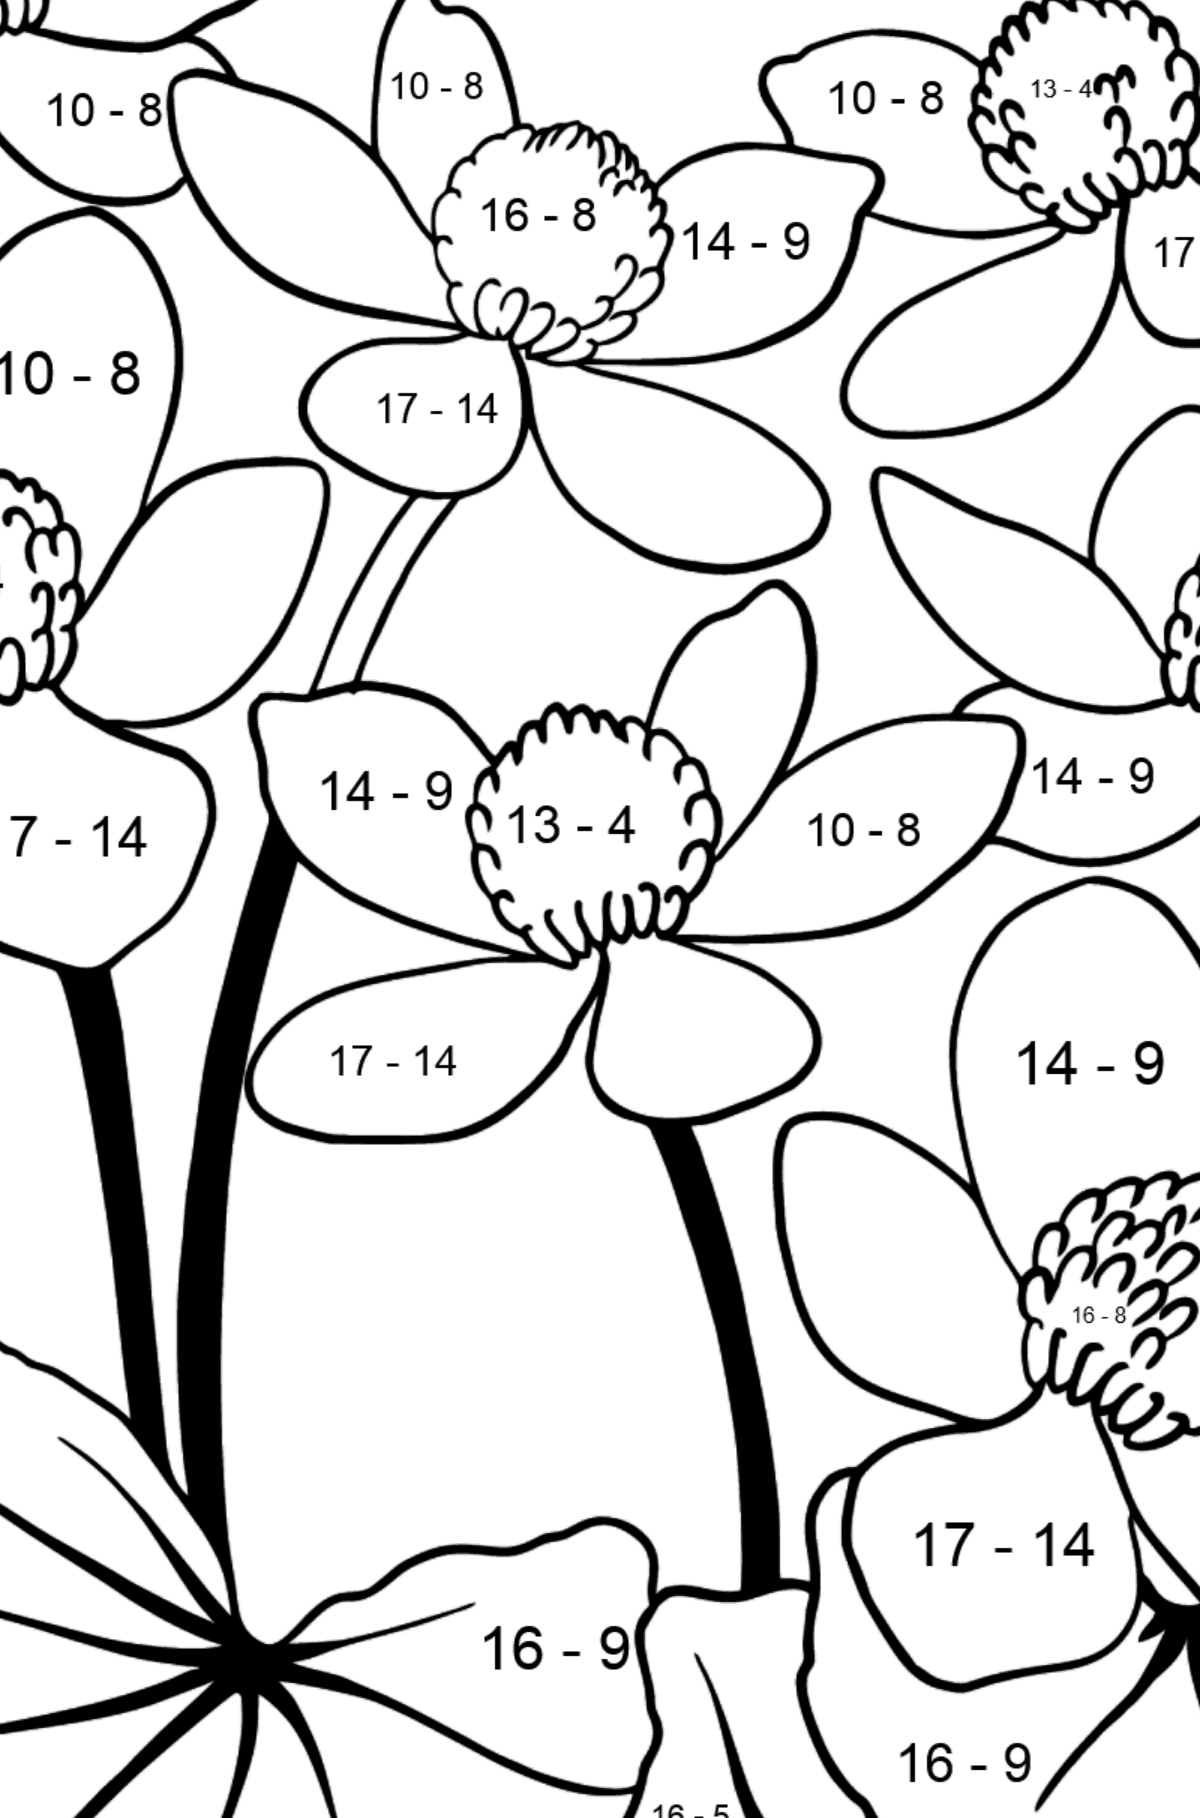 Flower Coloring Page - Marsh Marigold - Math Coloring - Subtraction for Kids